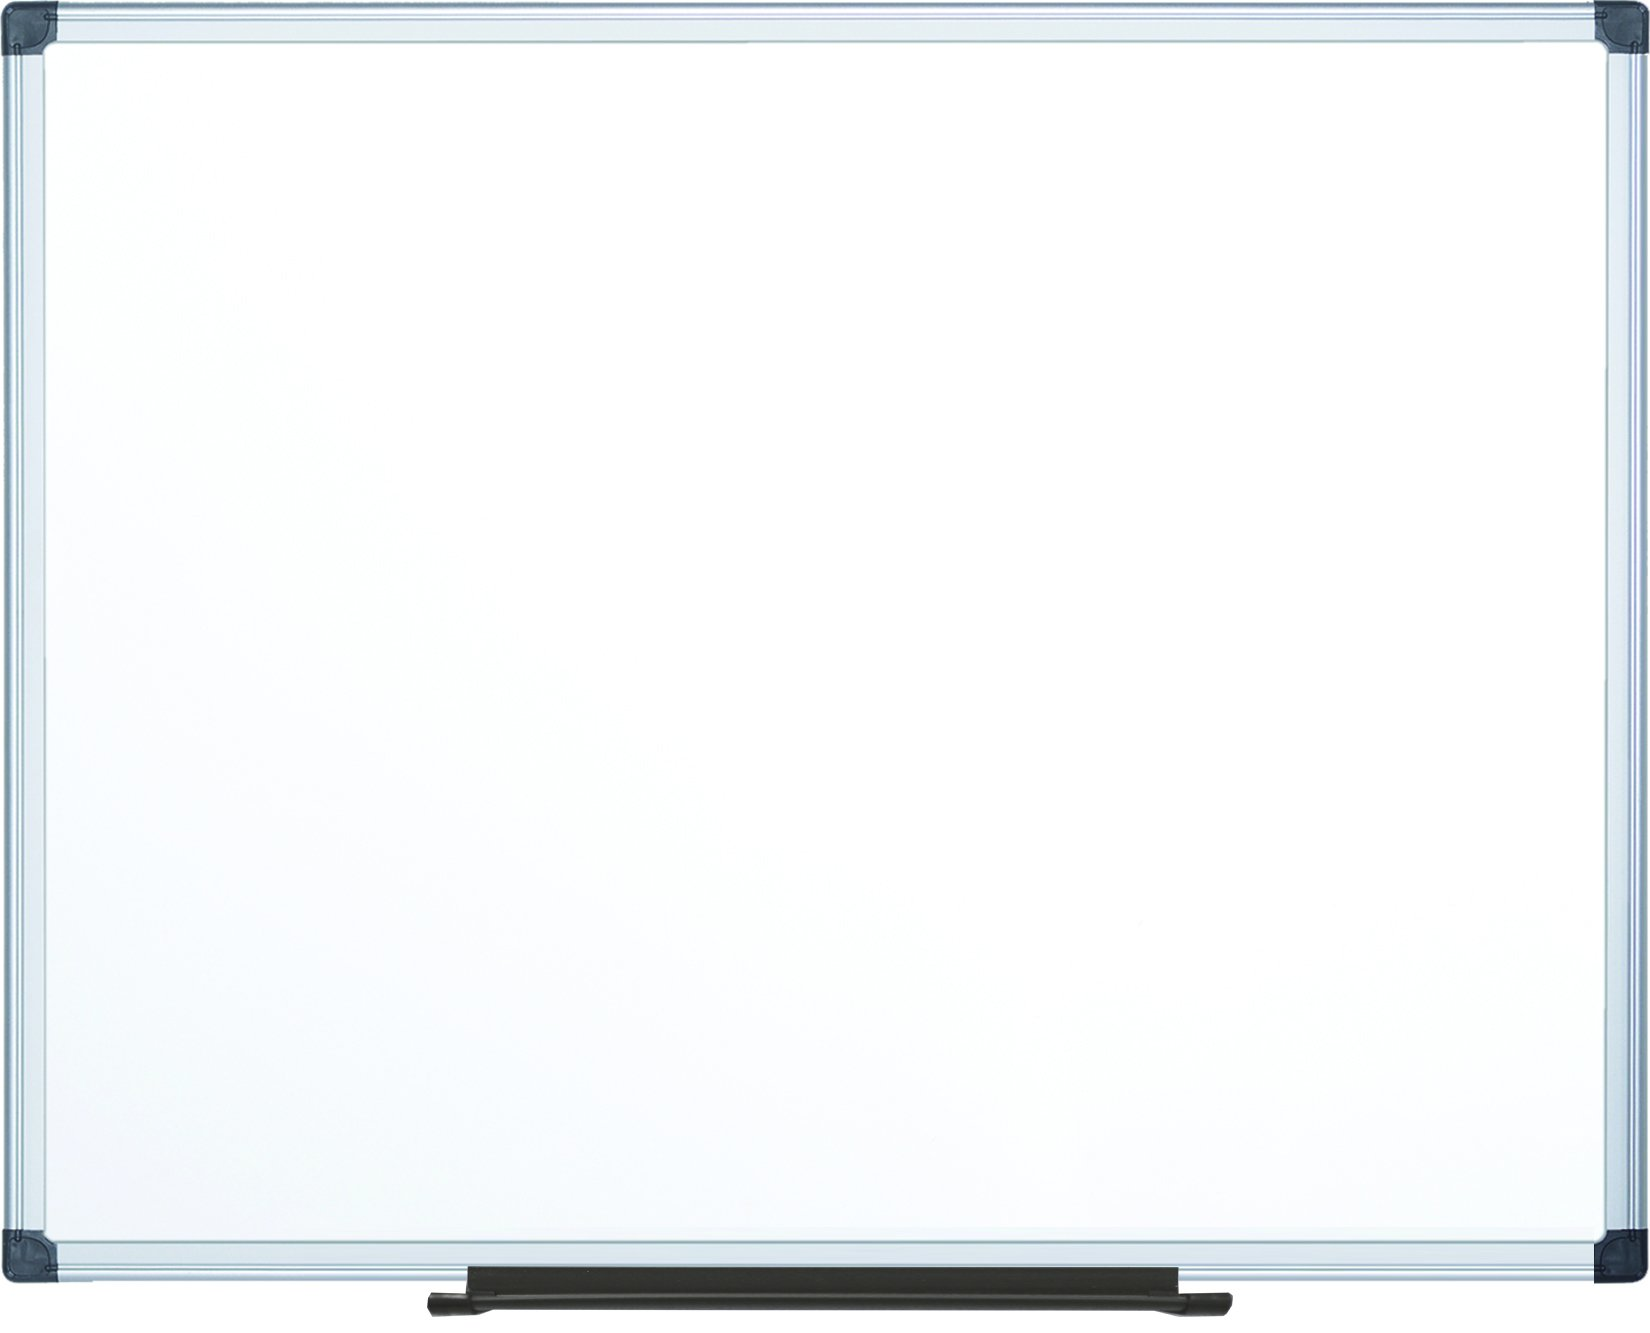 MasterVision Maya Melamine Dry Erase Board with Tray, 48'' x 72'', Whiteboard with Aluminum Frame